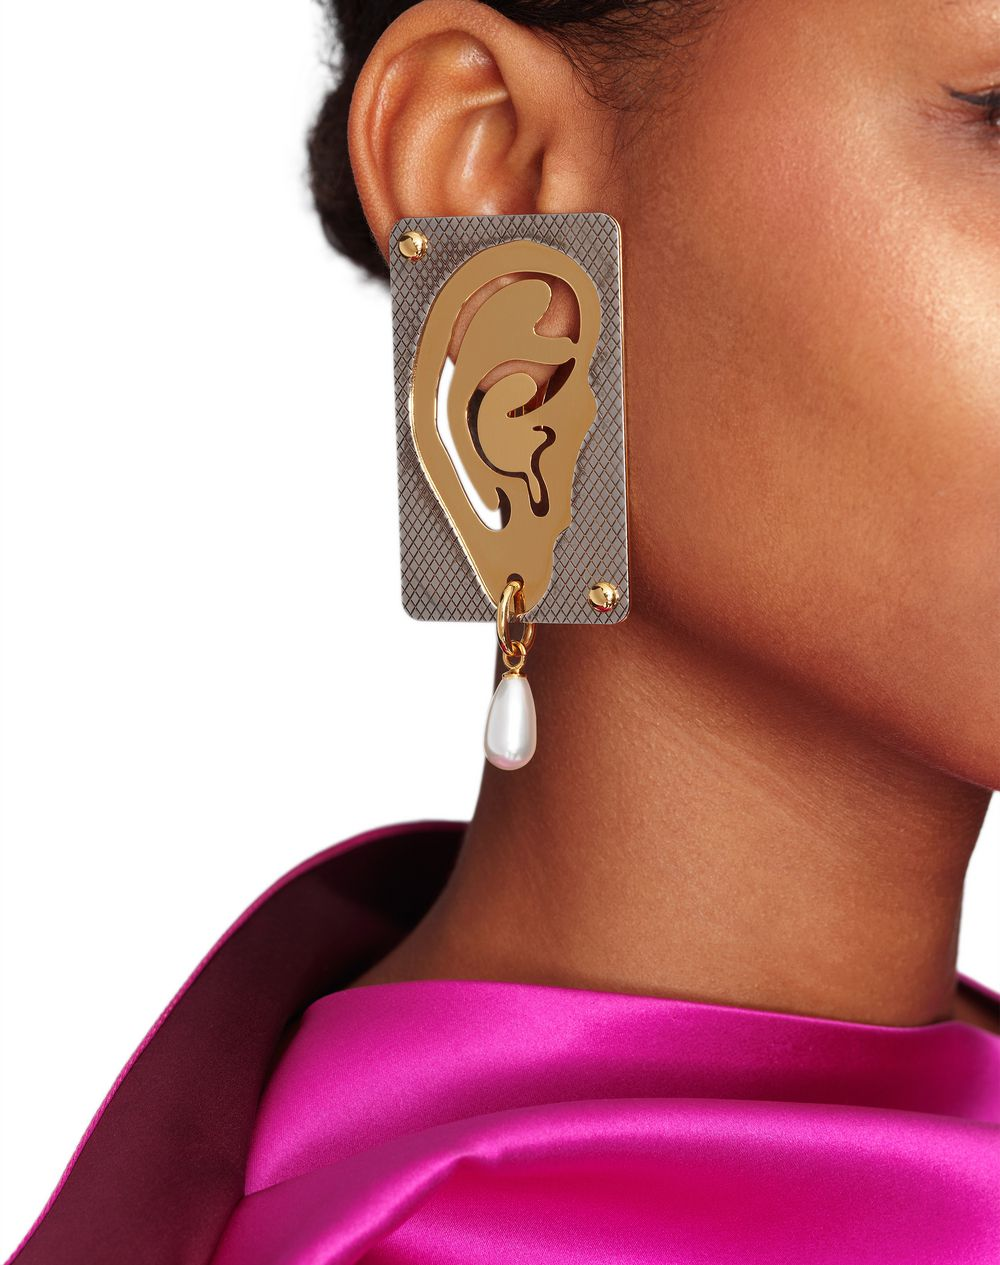 BEWITCHED EARRING - Lanvin